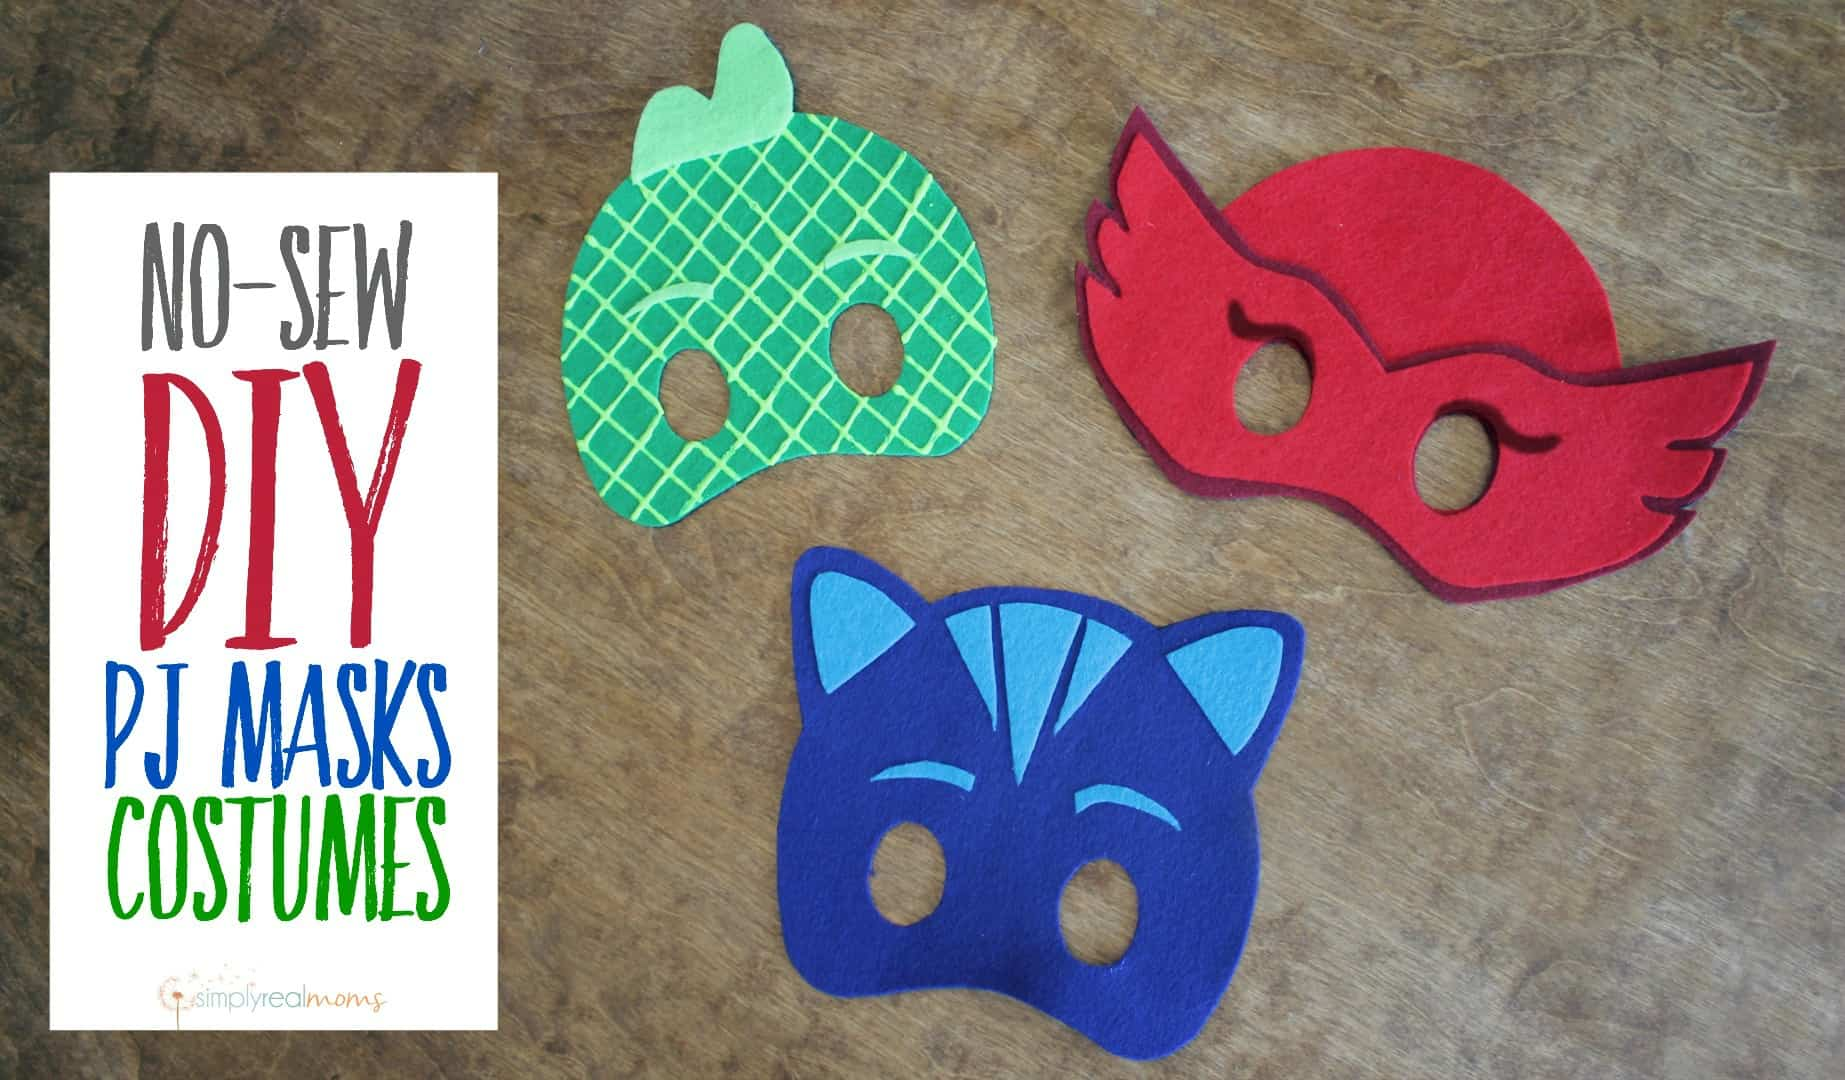 No sew diy pjs masks